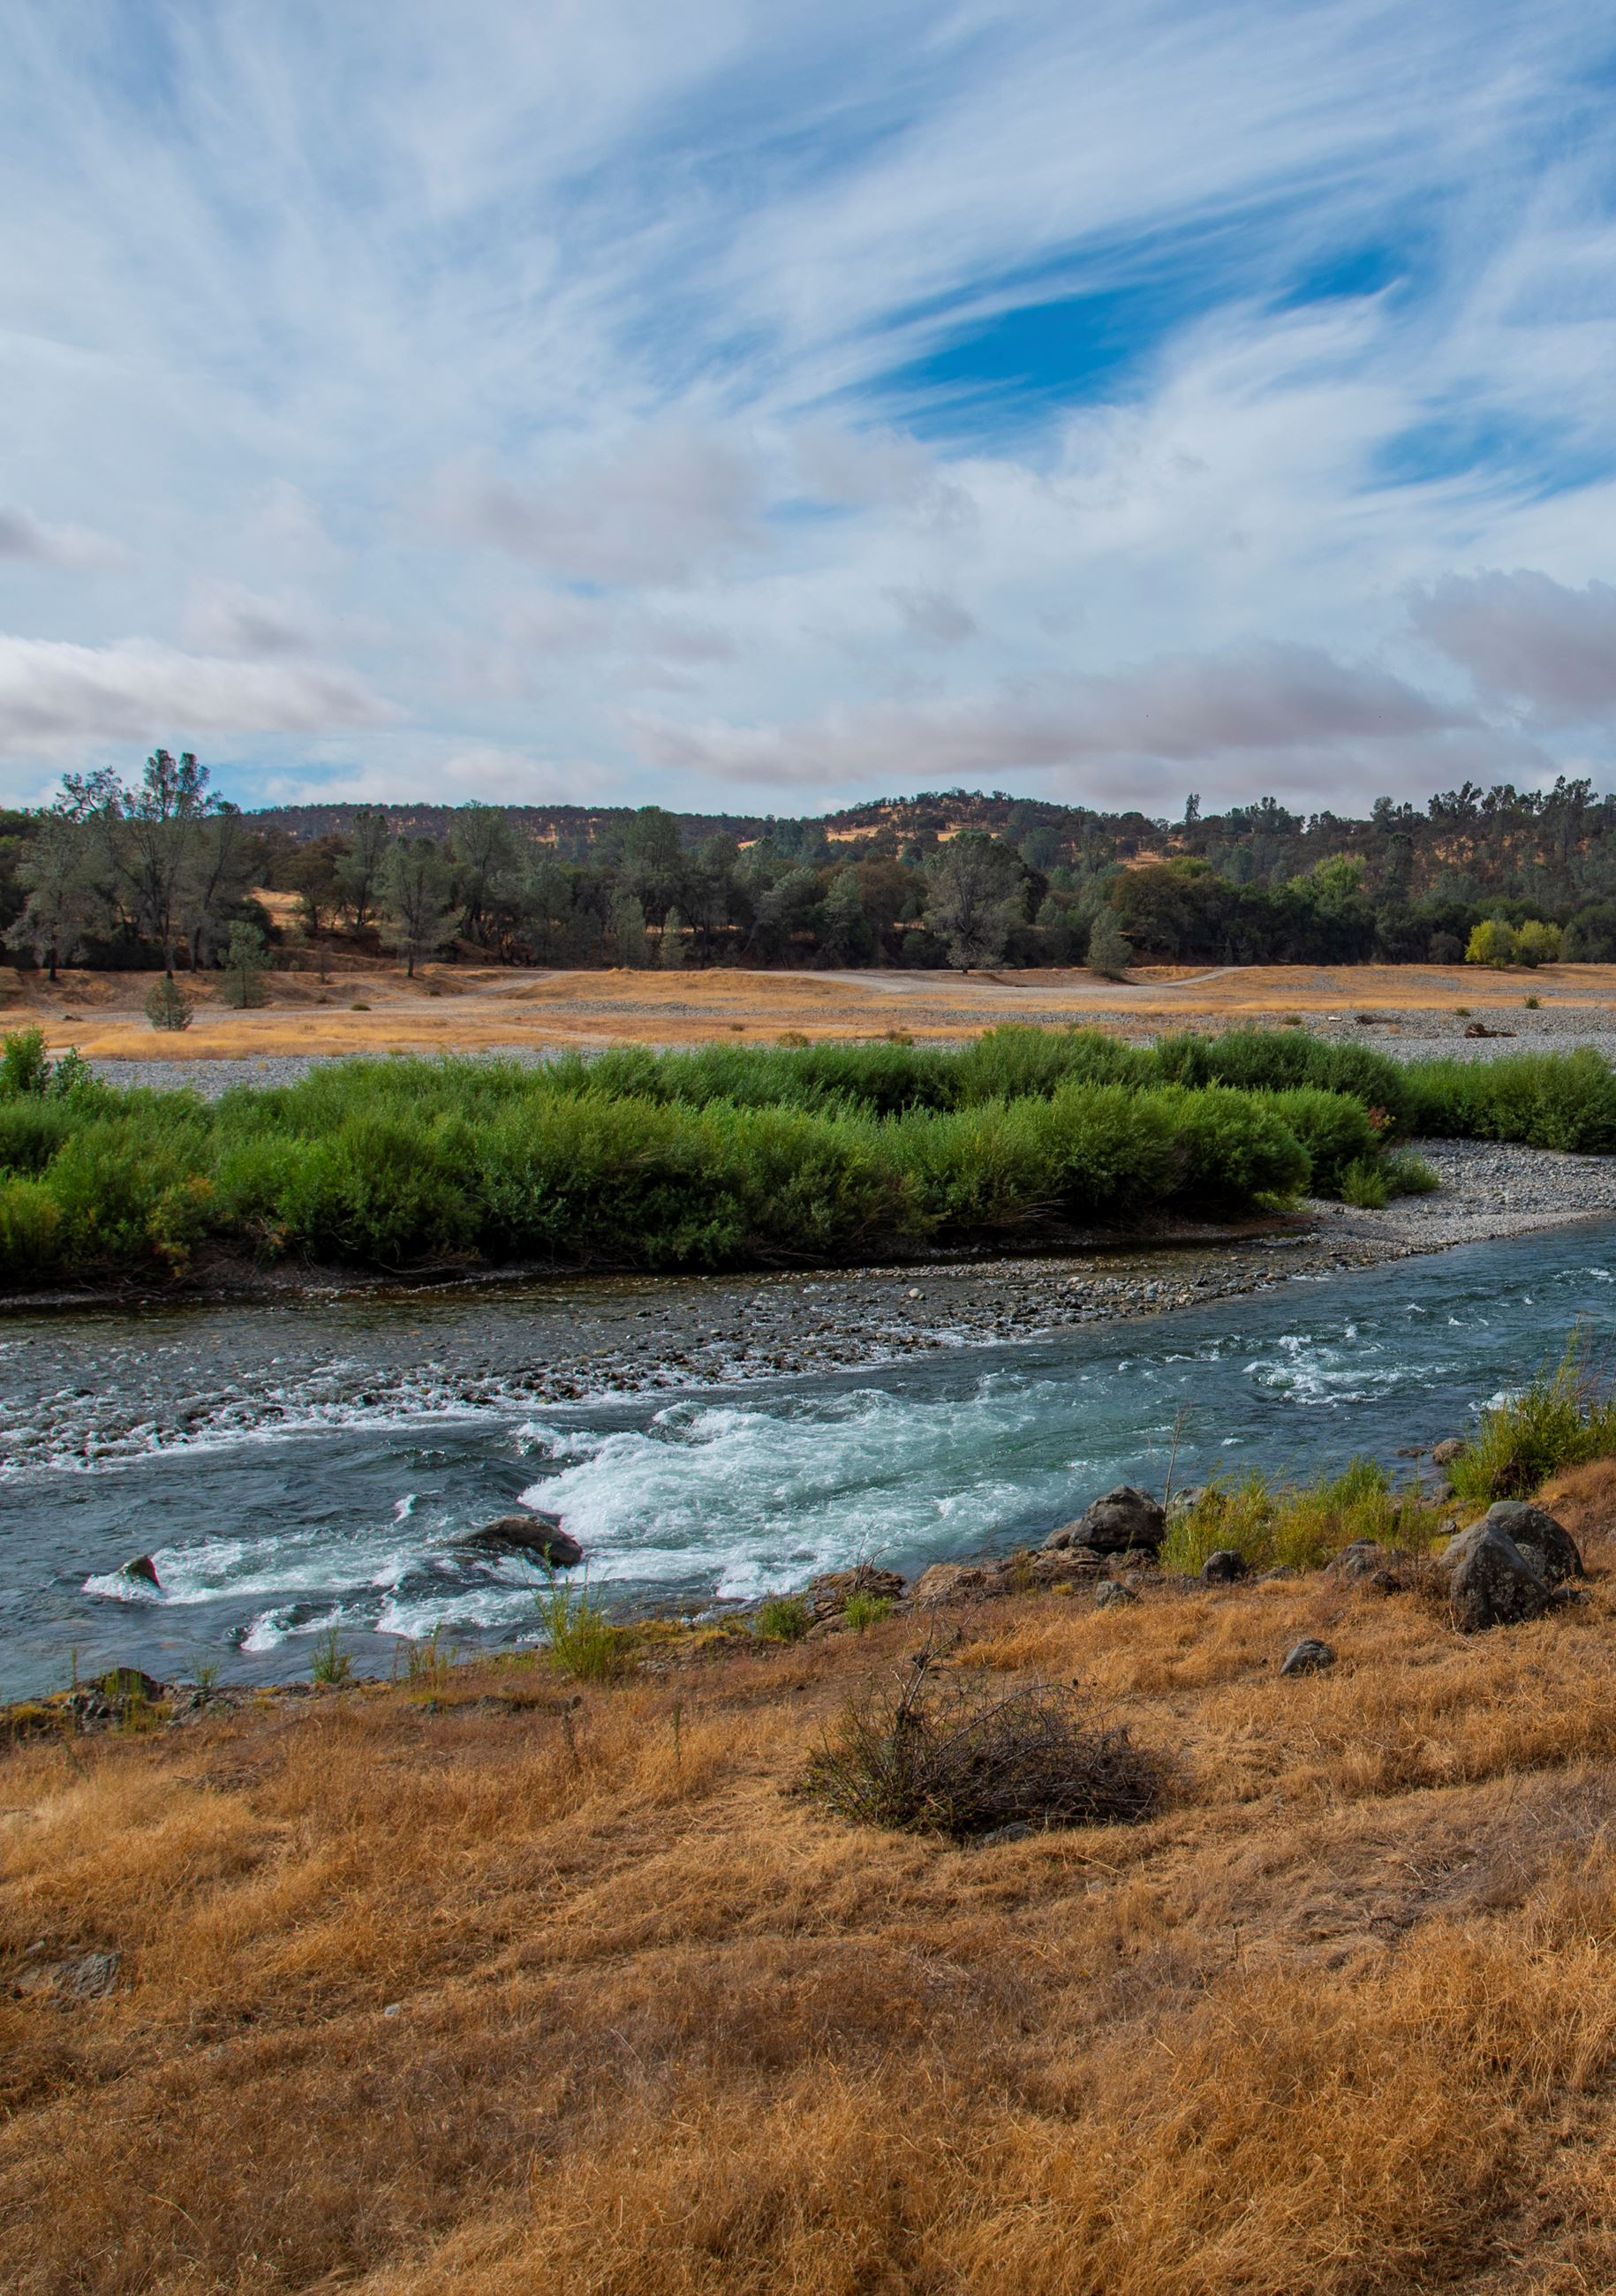 A photo of the lower Yuba River with lots of open space around.